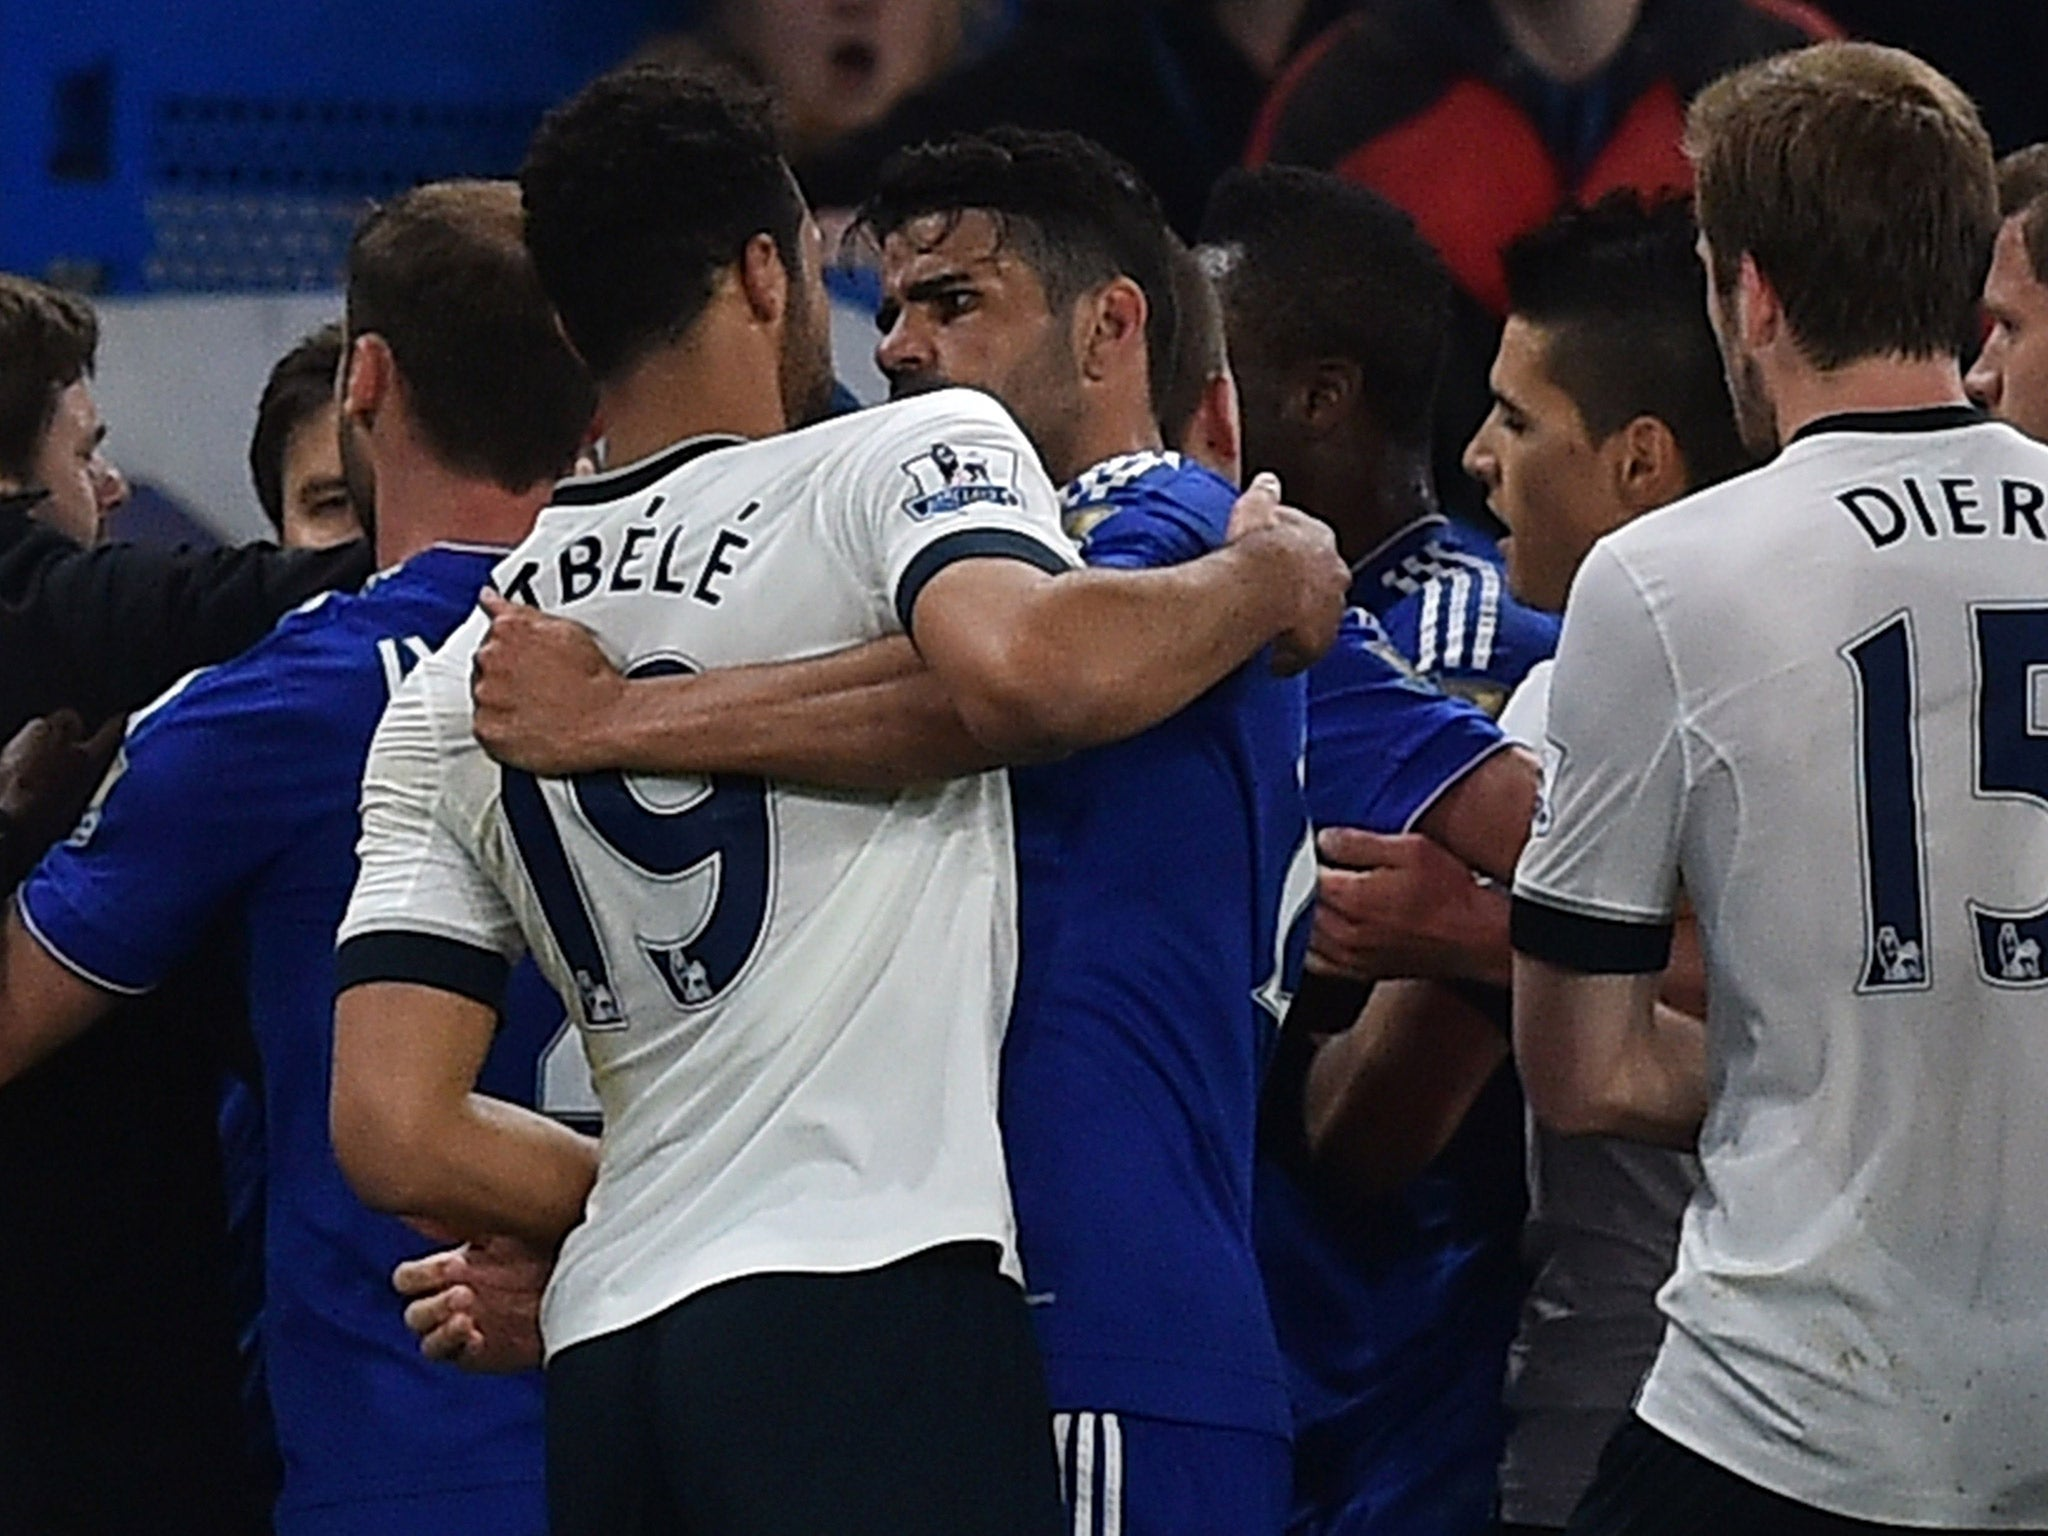 Chelsea vs Tottenham: Mousa Dembele faces likely ban for Diego Costa eye-gouge as Gary Cahill calls for leniency